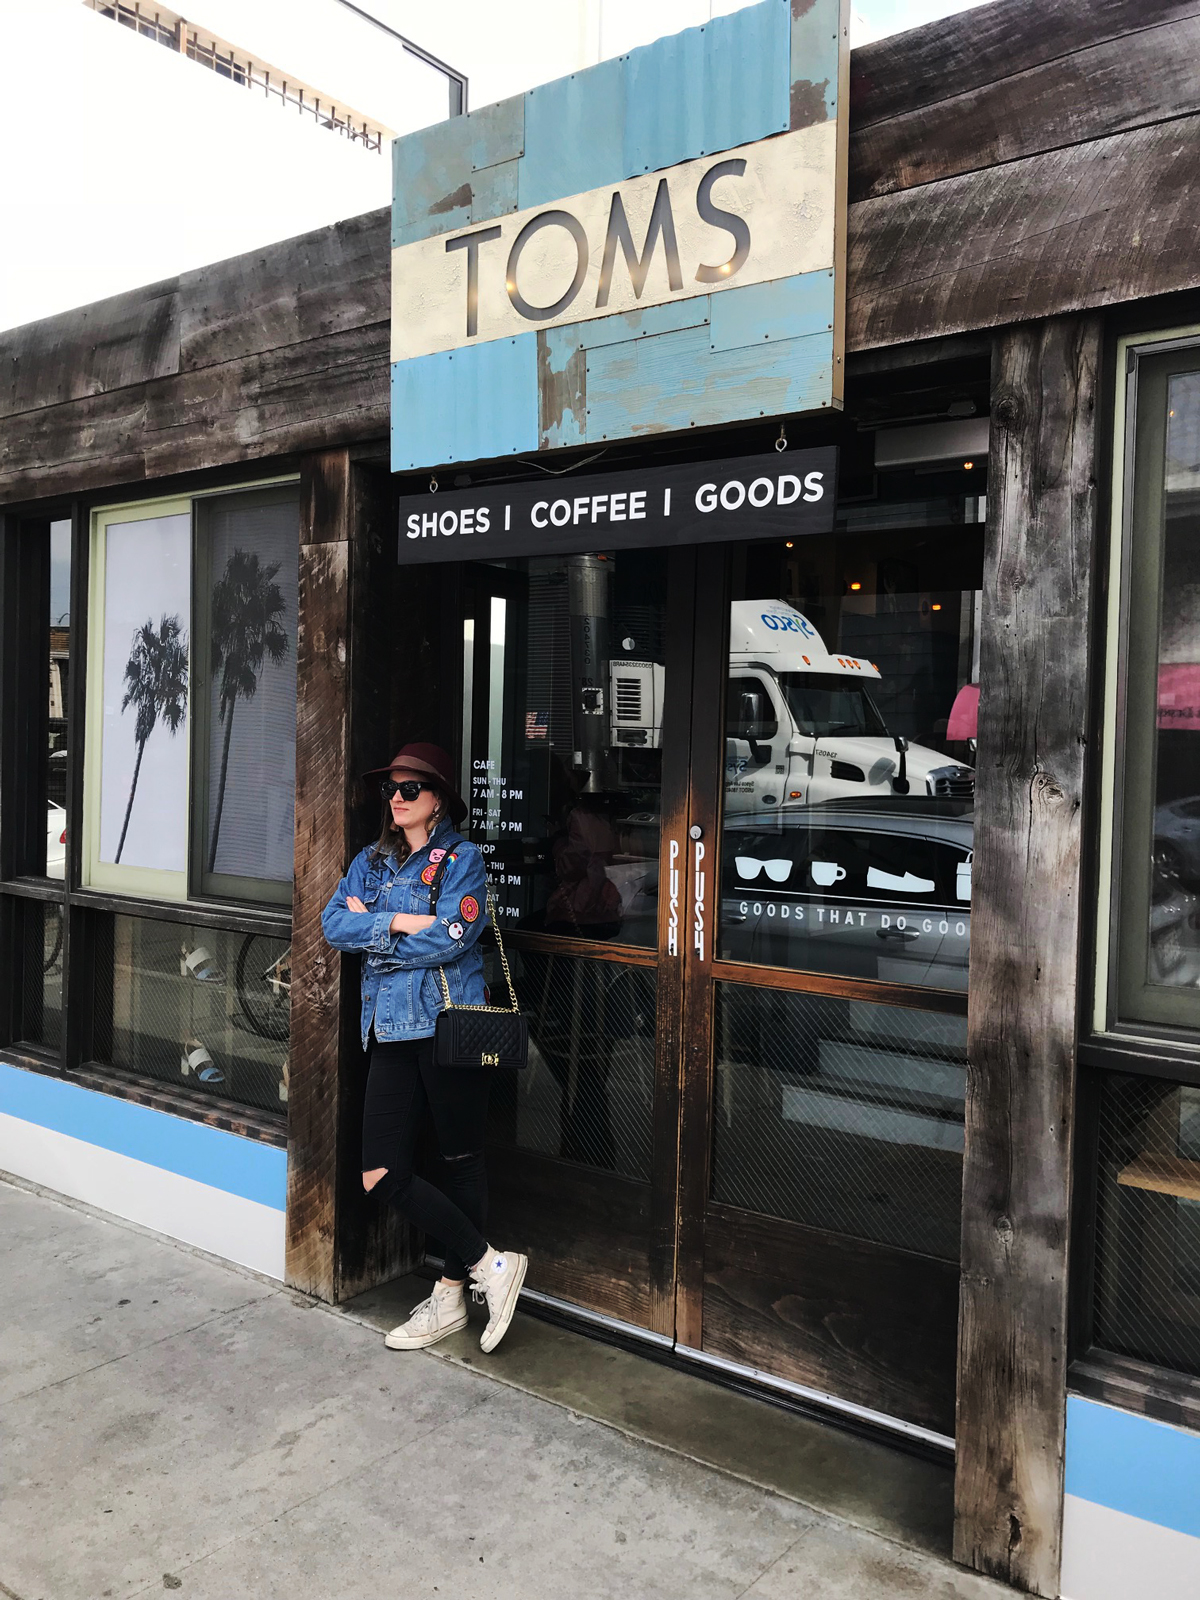 Fashion and Travel Blog Strawberries 'n' Champagne by Andrea Steiner write about her favorite spots in Los Angeles and the coolest stores like TOMS in Abbot Kinney.